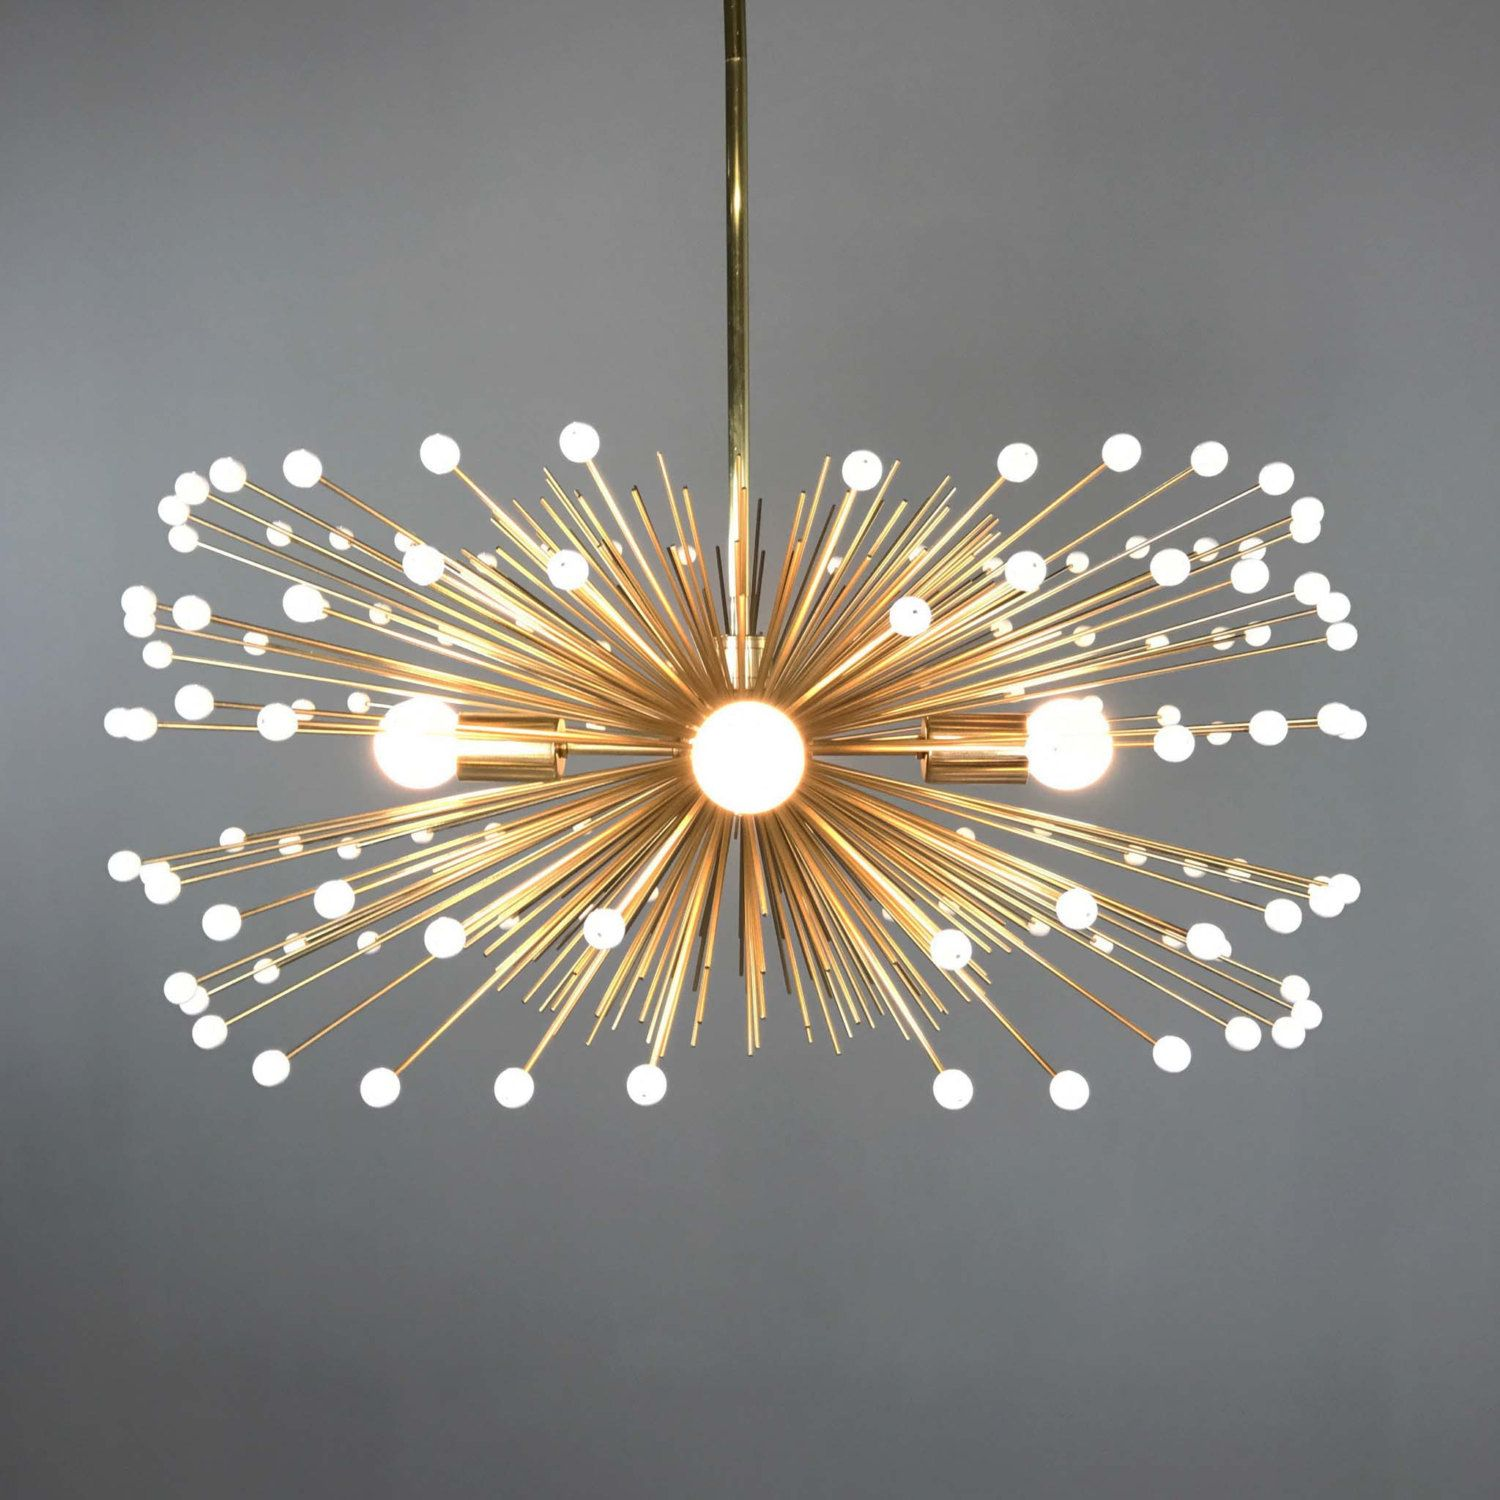 Adorned with white acrylic beads the gold urchin chandelier is a